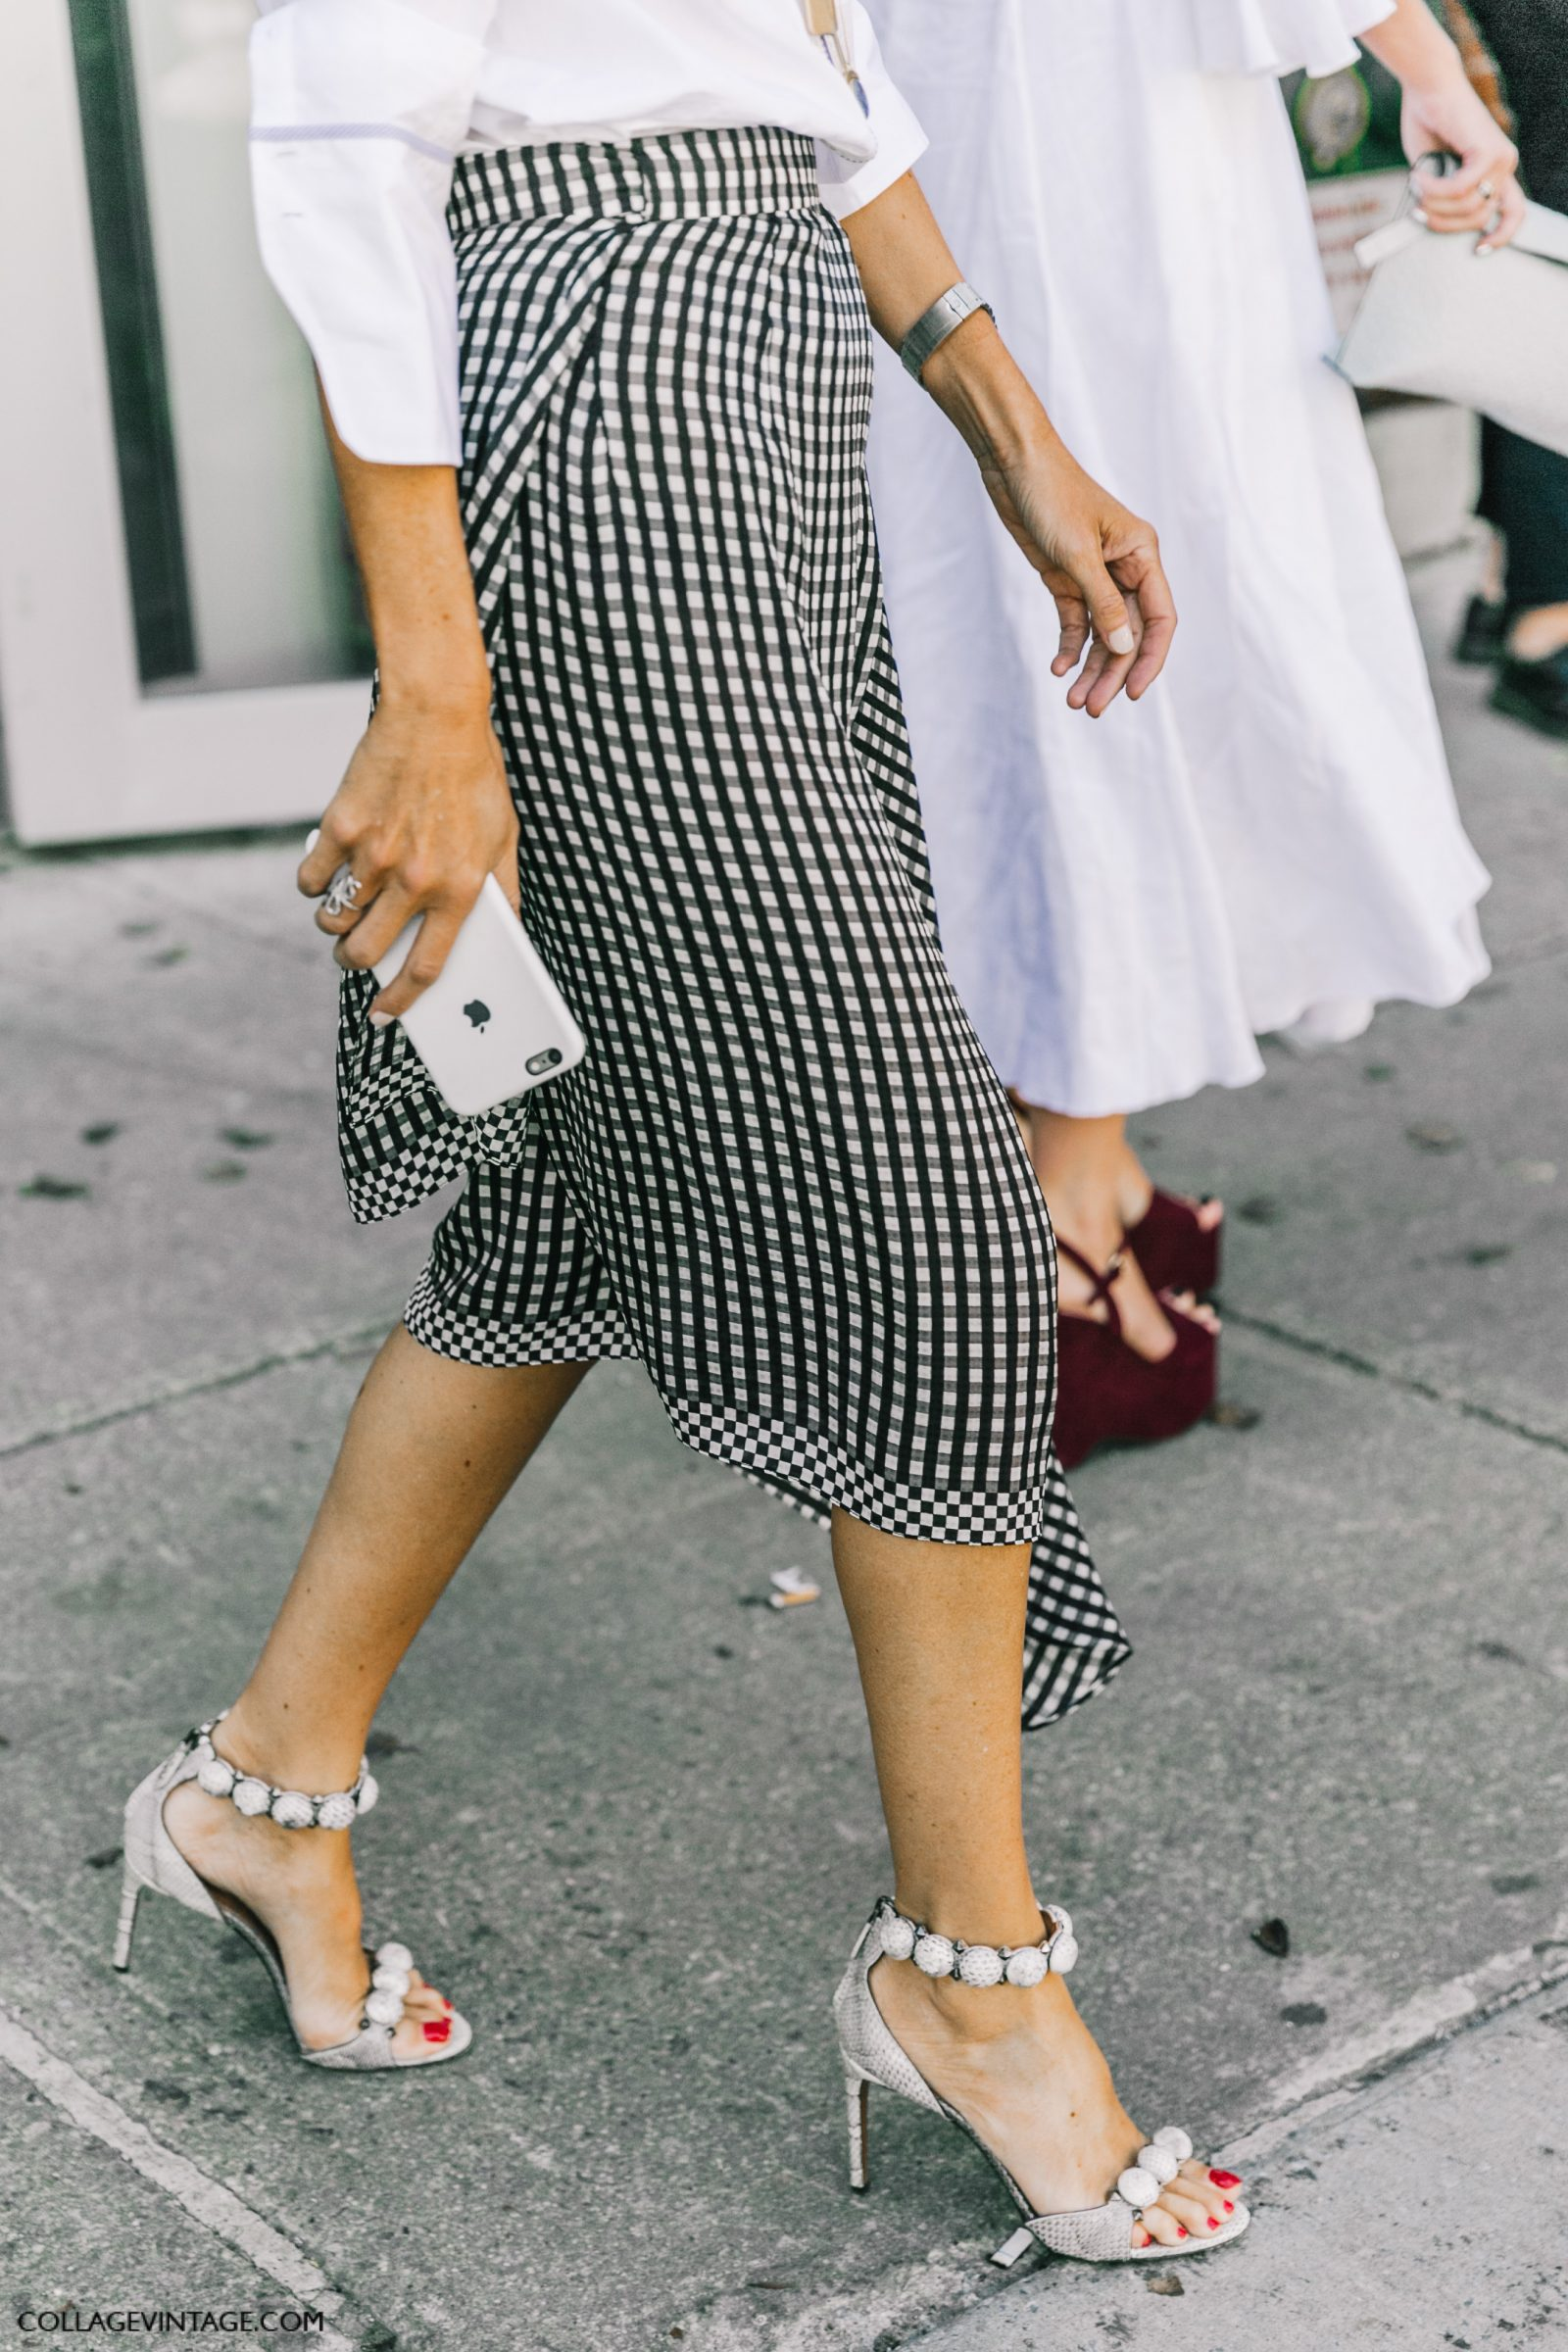 nyfw-new_york_fashion_week_ss17-street_style-outfits-collage_vintage-vintage-mansur_gavriel-rodarte-coach-17